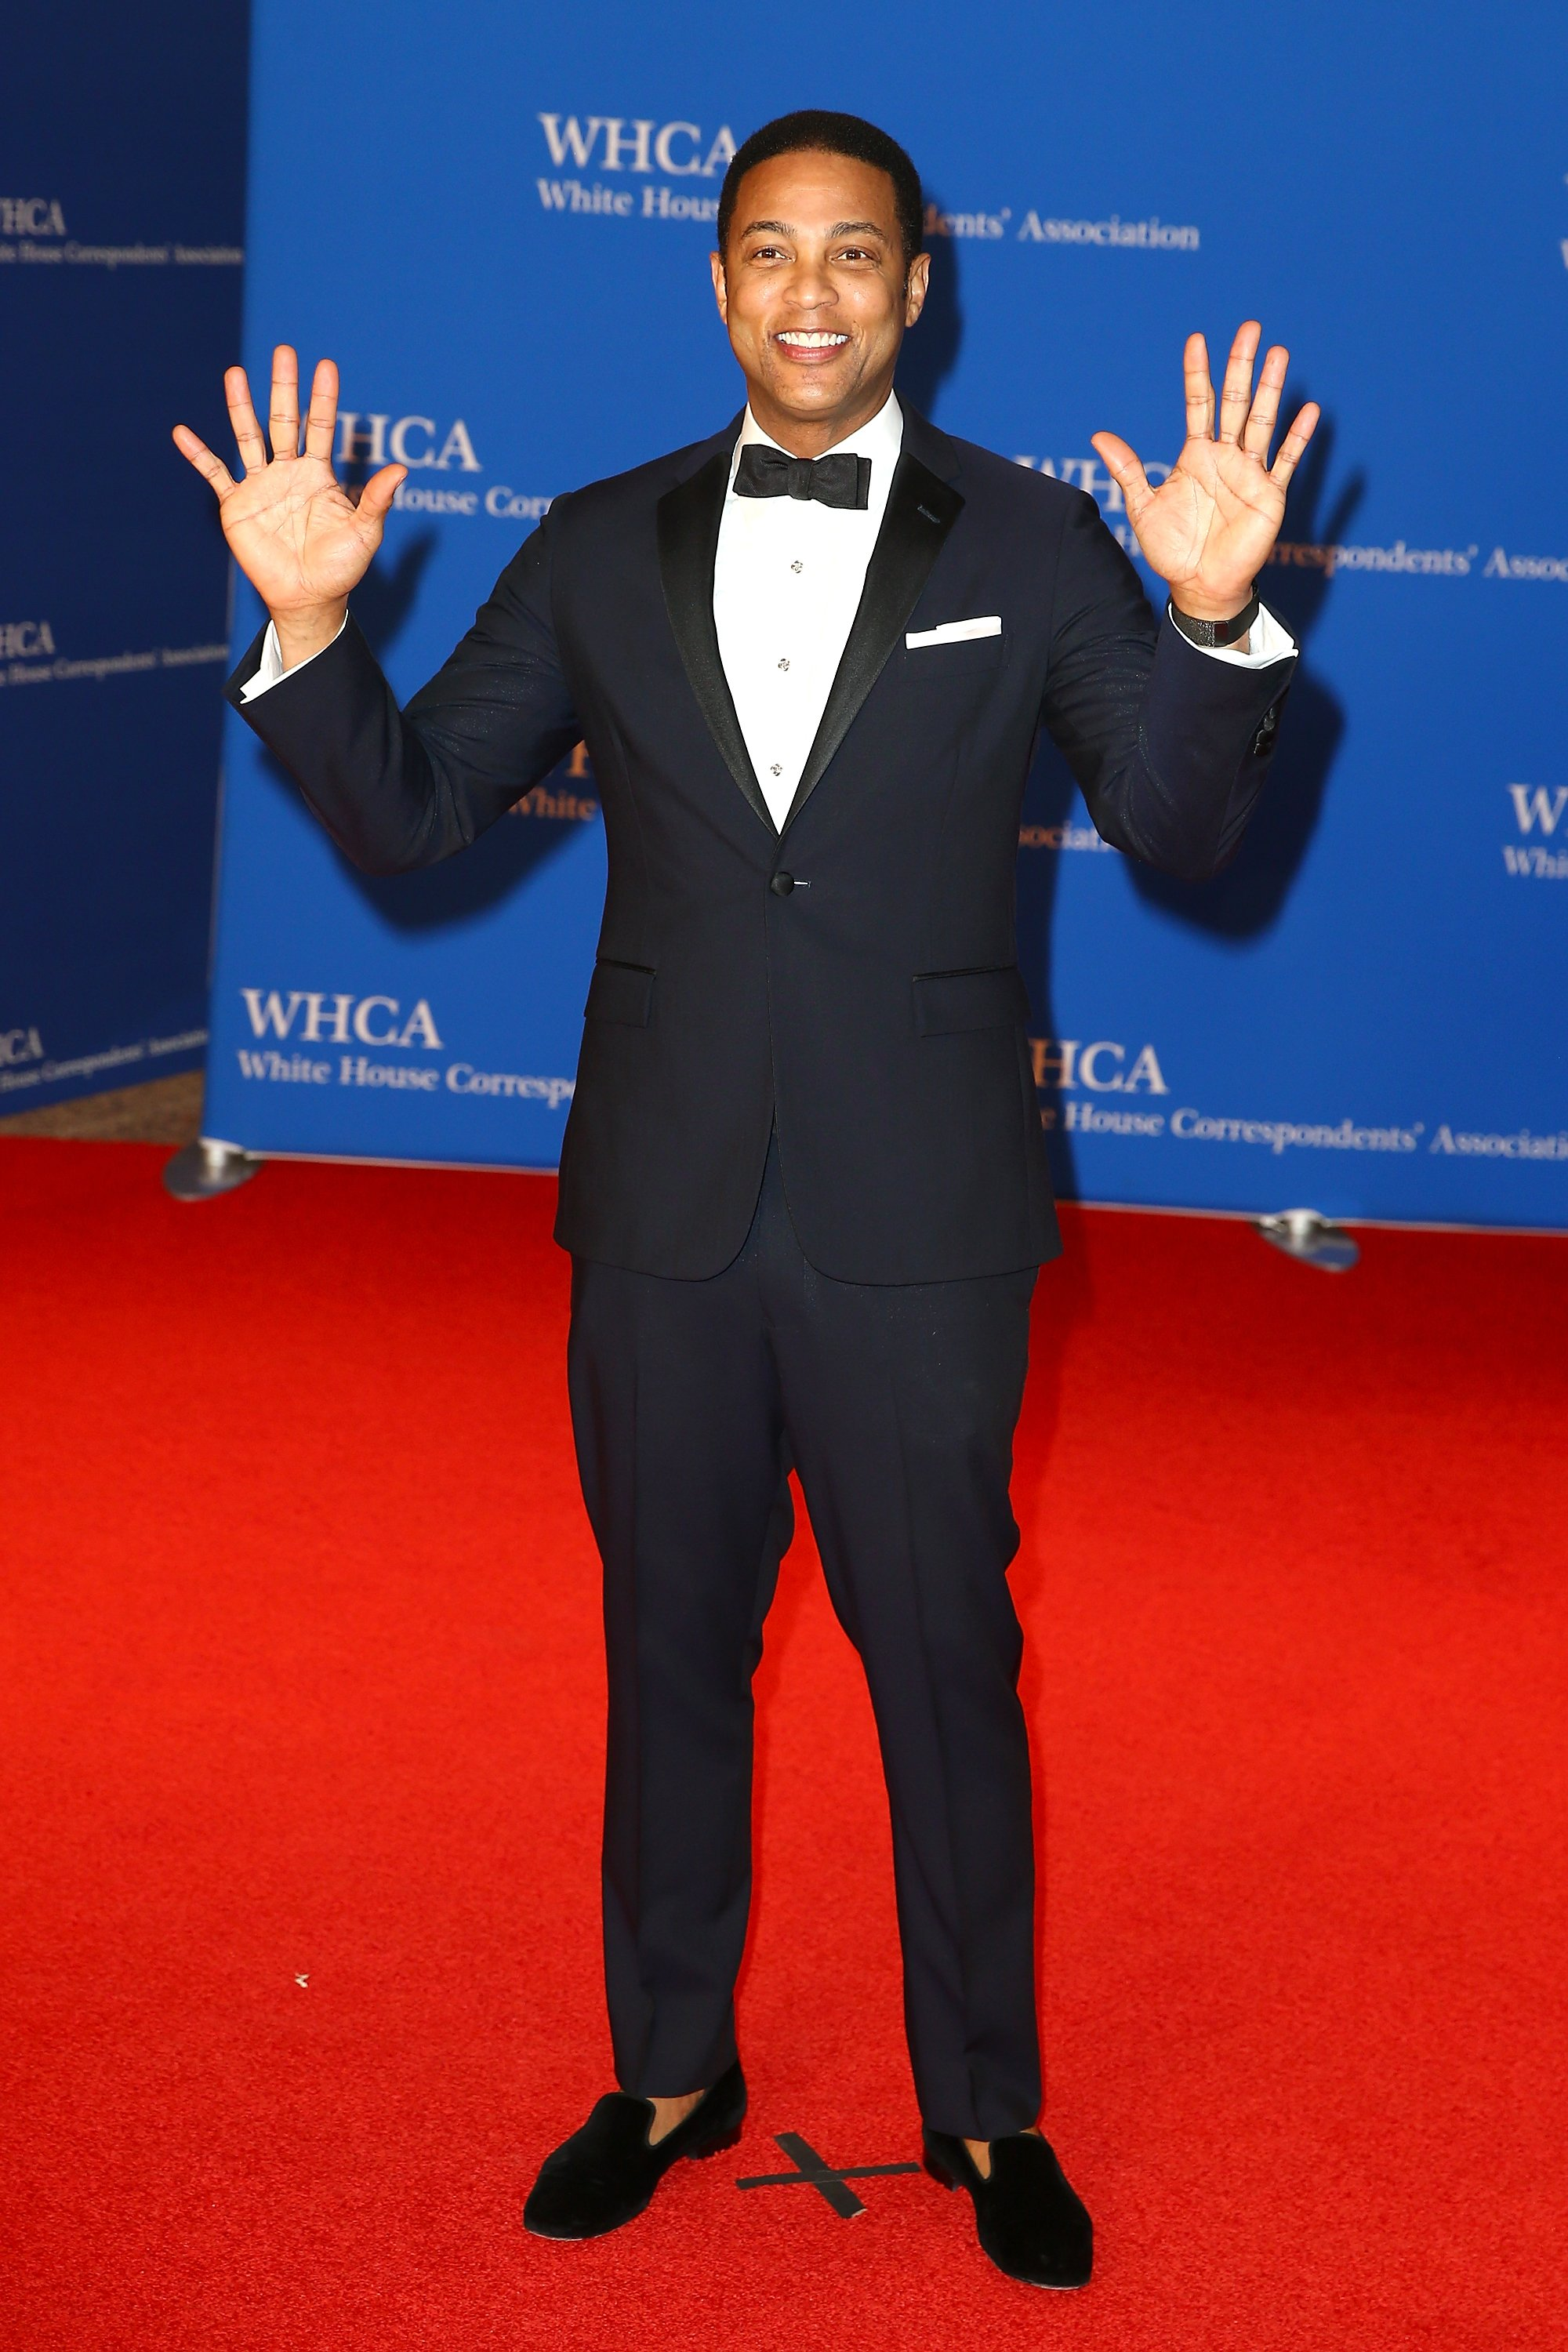 Don Lemon at Washington Hilton on April 28, 2018 in Washington, DC. | Source: Getty Images